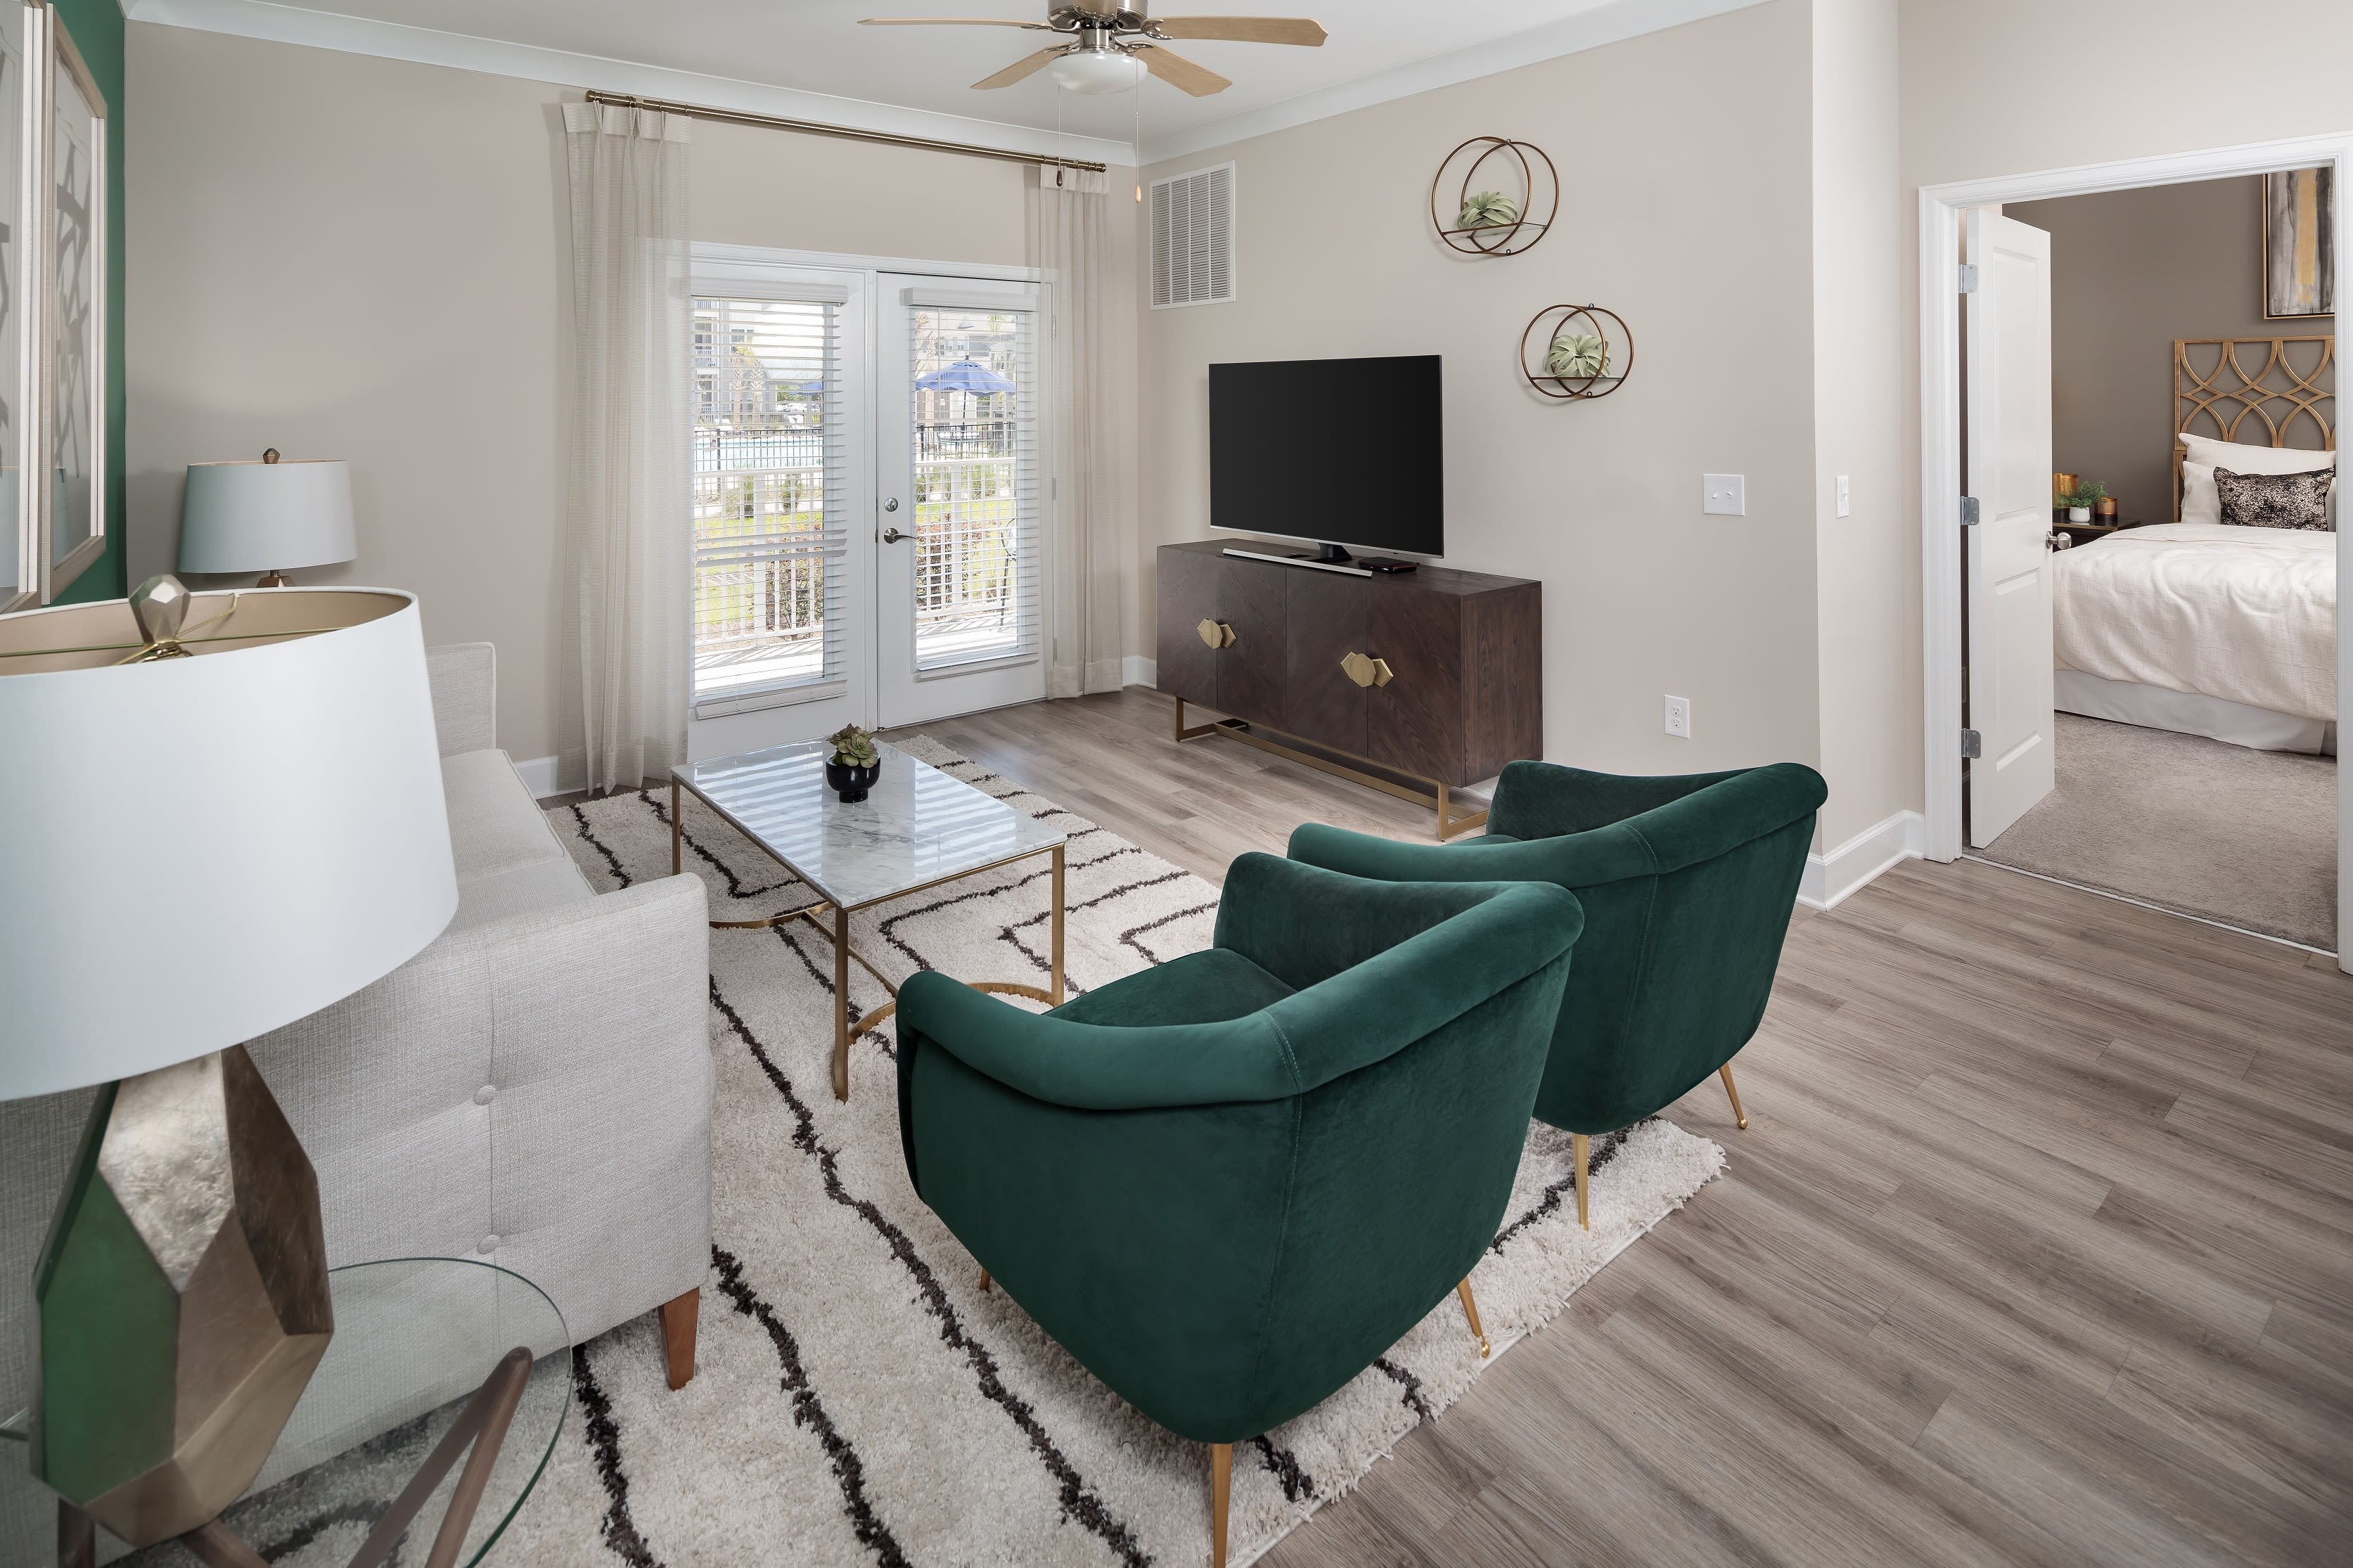 Spacious living room and kitchen area in a model home at The Isaac in Summerville, South Carolina